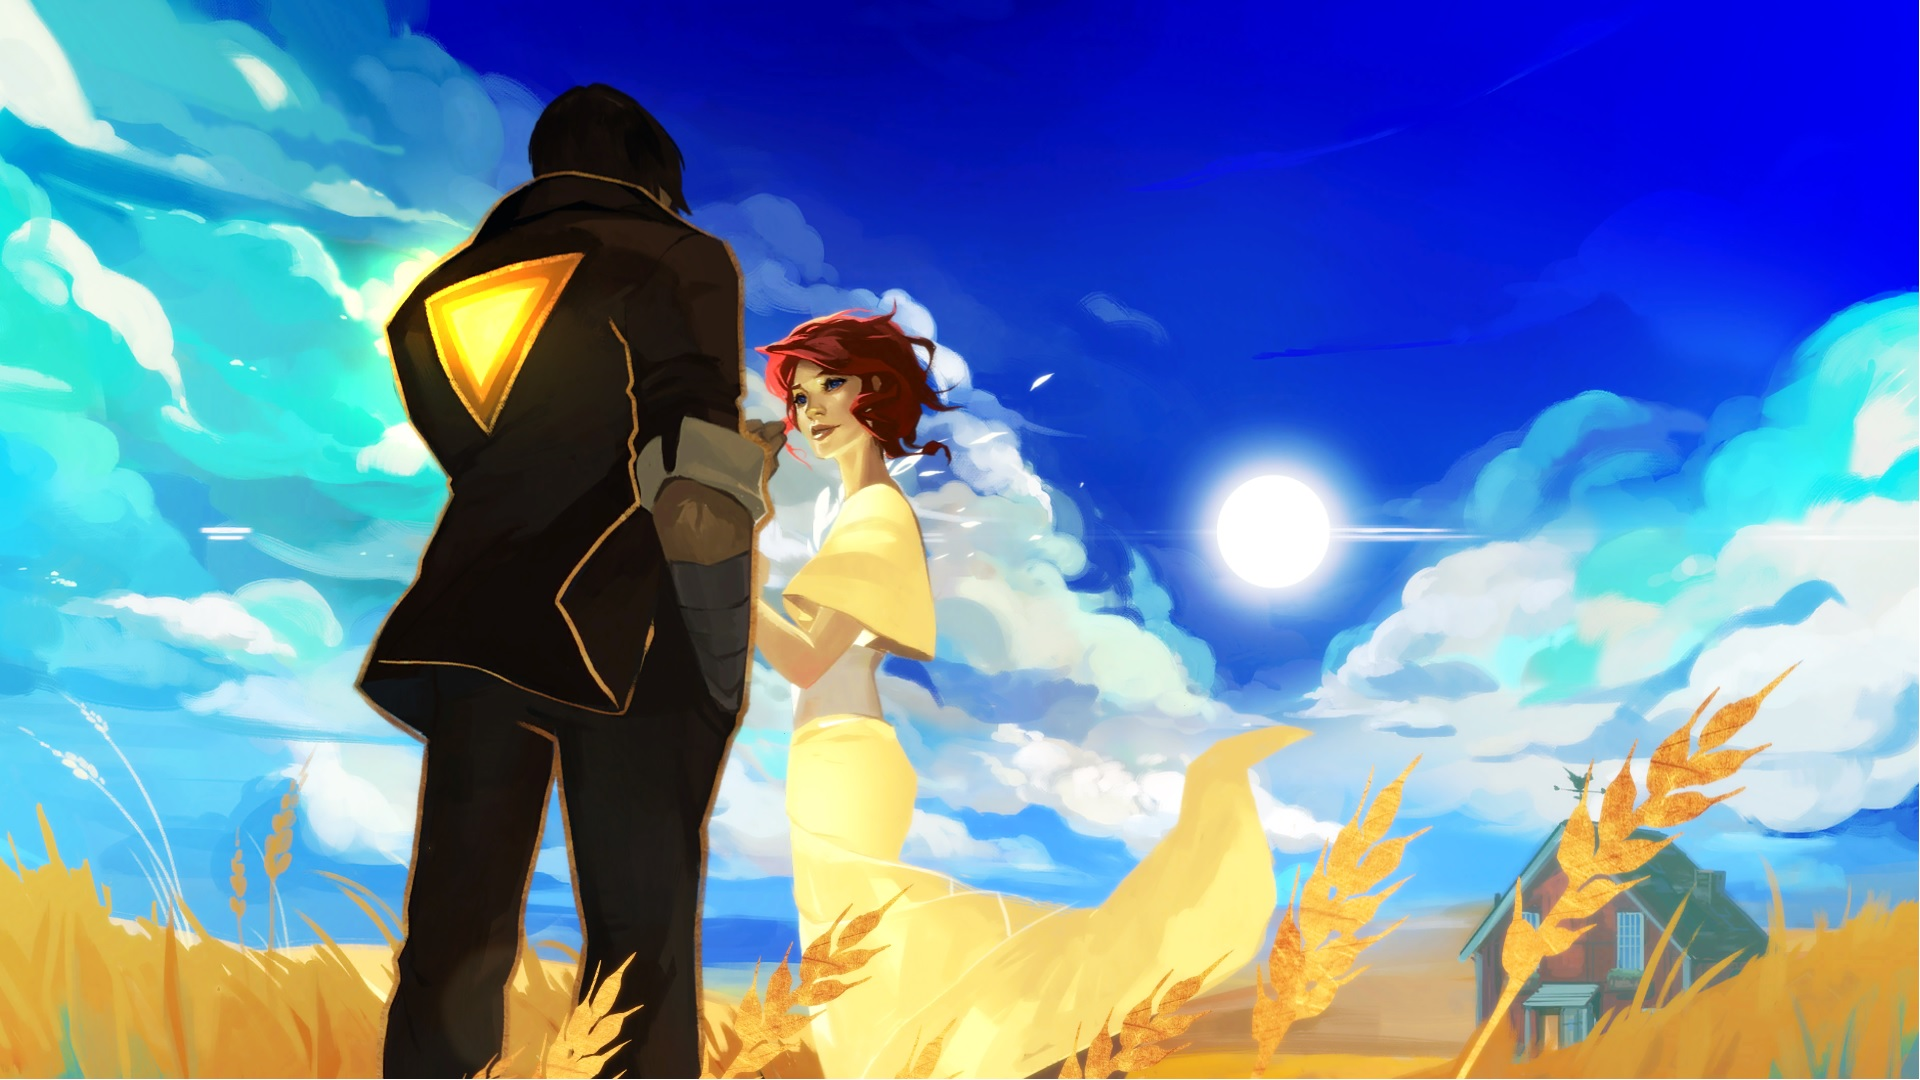 Going-out-to-the-country-1920%C3%971080-Transistor-wallpaper-wp3606224